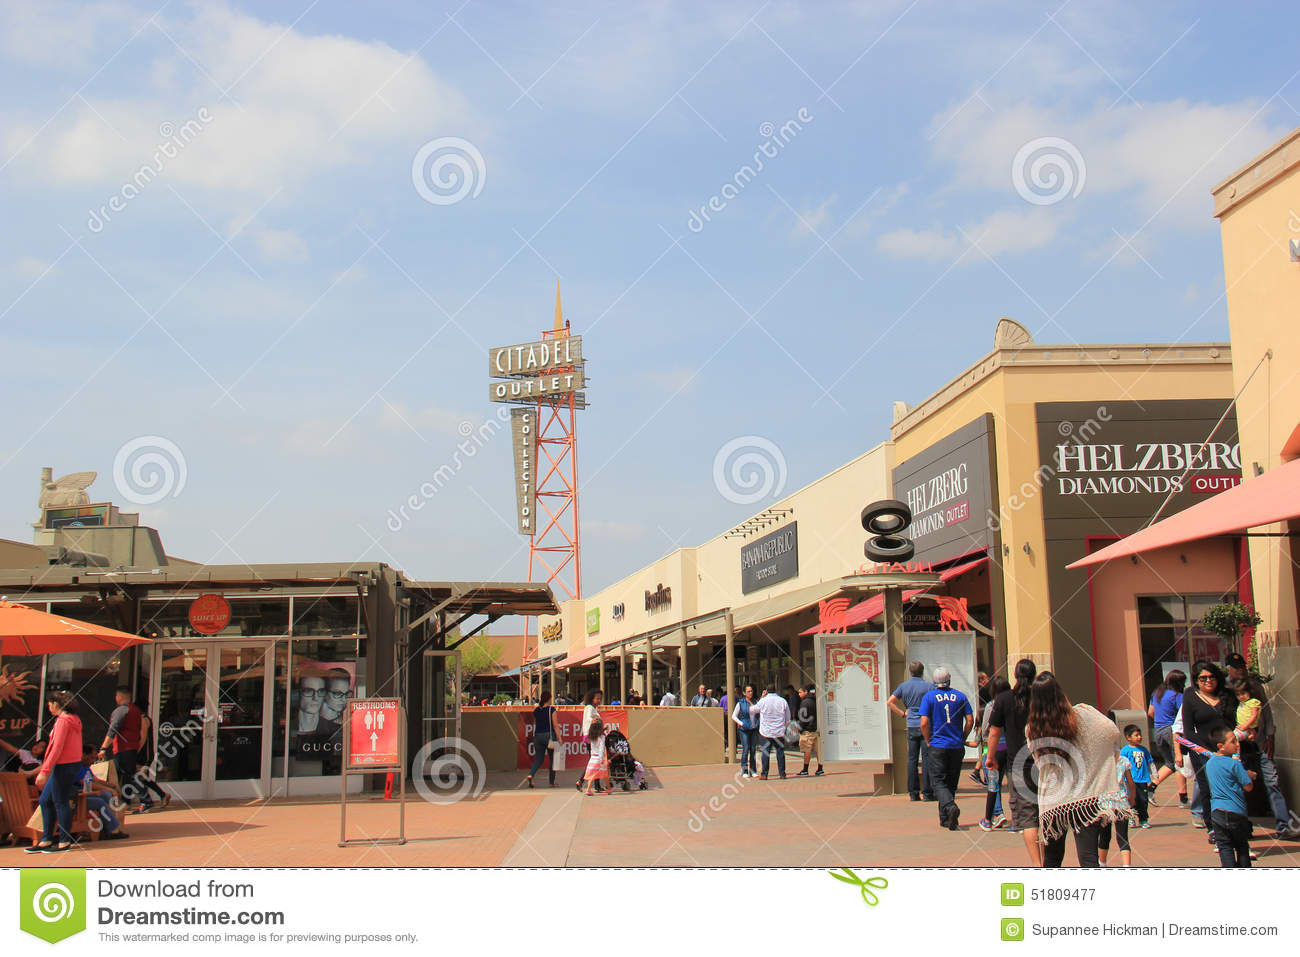 Organize your next trip to the outlet mall by knowing in advance where the mall is located, what is on sale, if the outlet offers special group discounts, when special events such as sidewalk sales are scheduled and other time-saving and money-saving information.